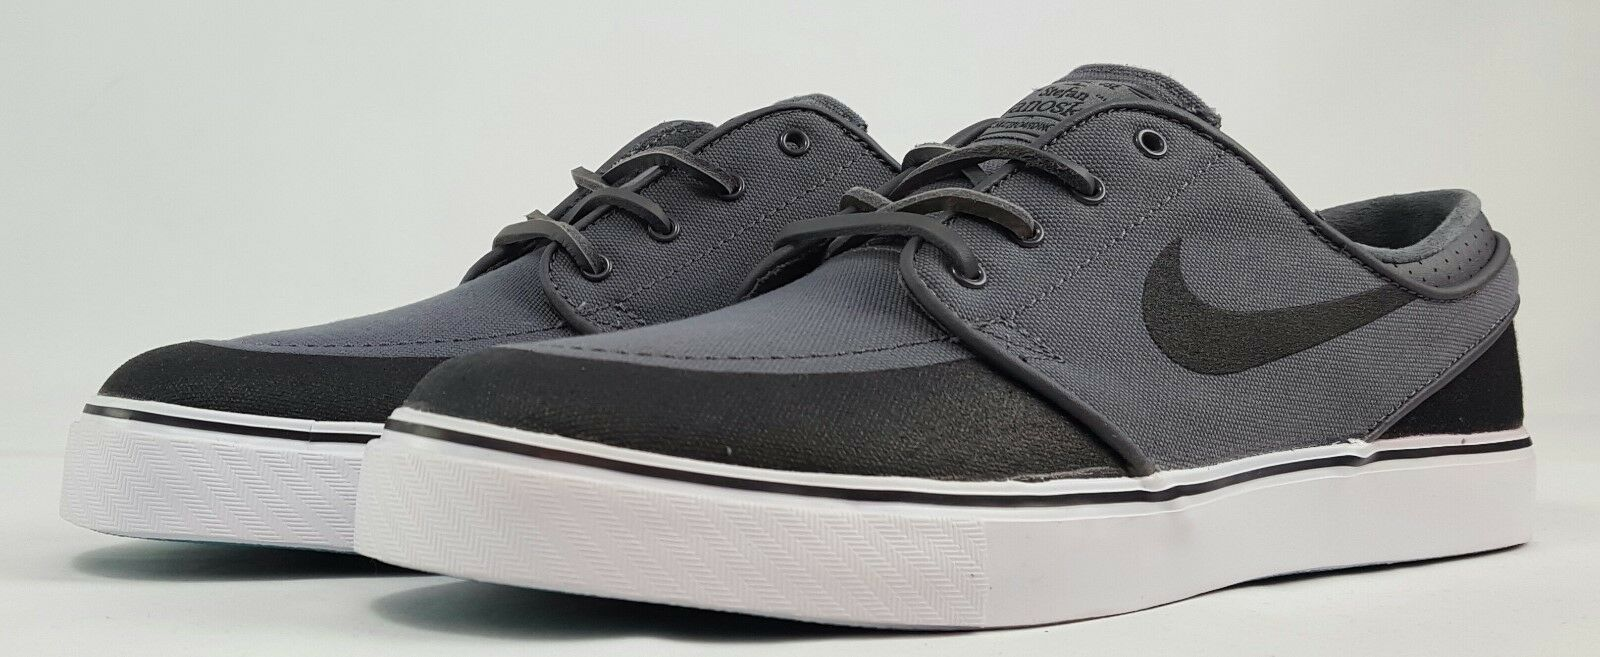 EXCLUSIVE NIKE ZOOM STEFAN JANOSKI PR SIZES 8.5-11 Price reduction Comfortable and good-looking